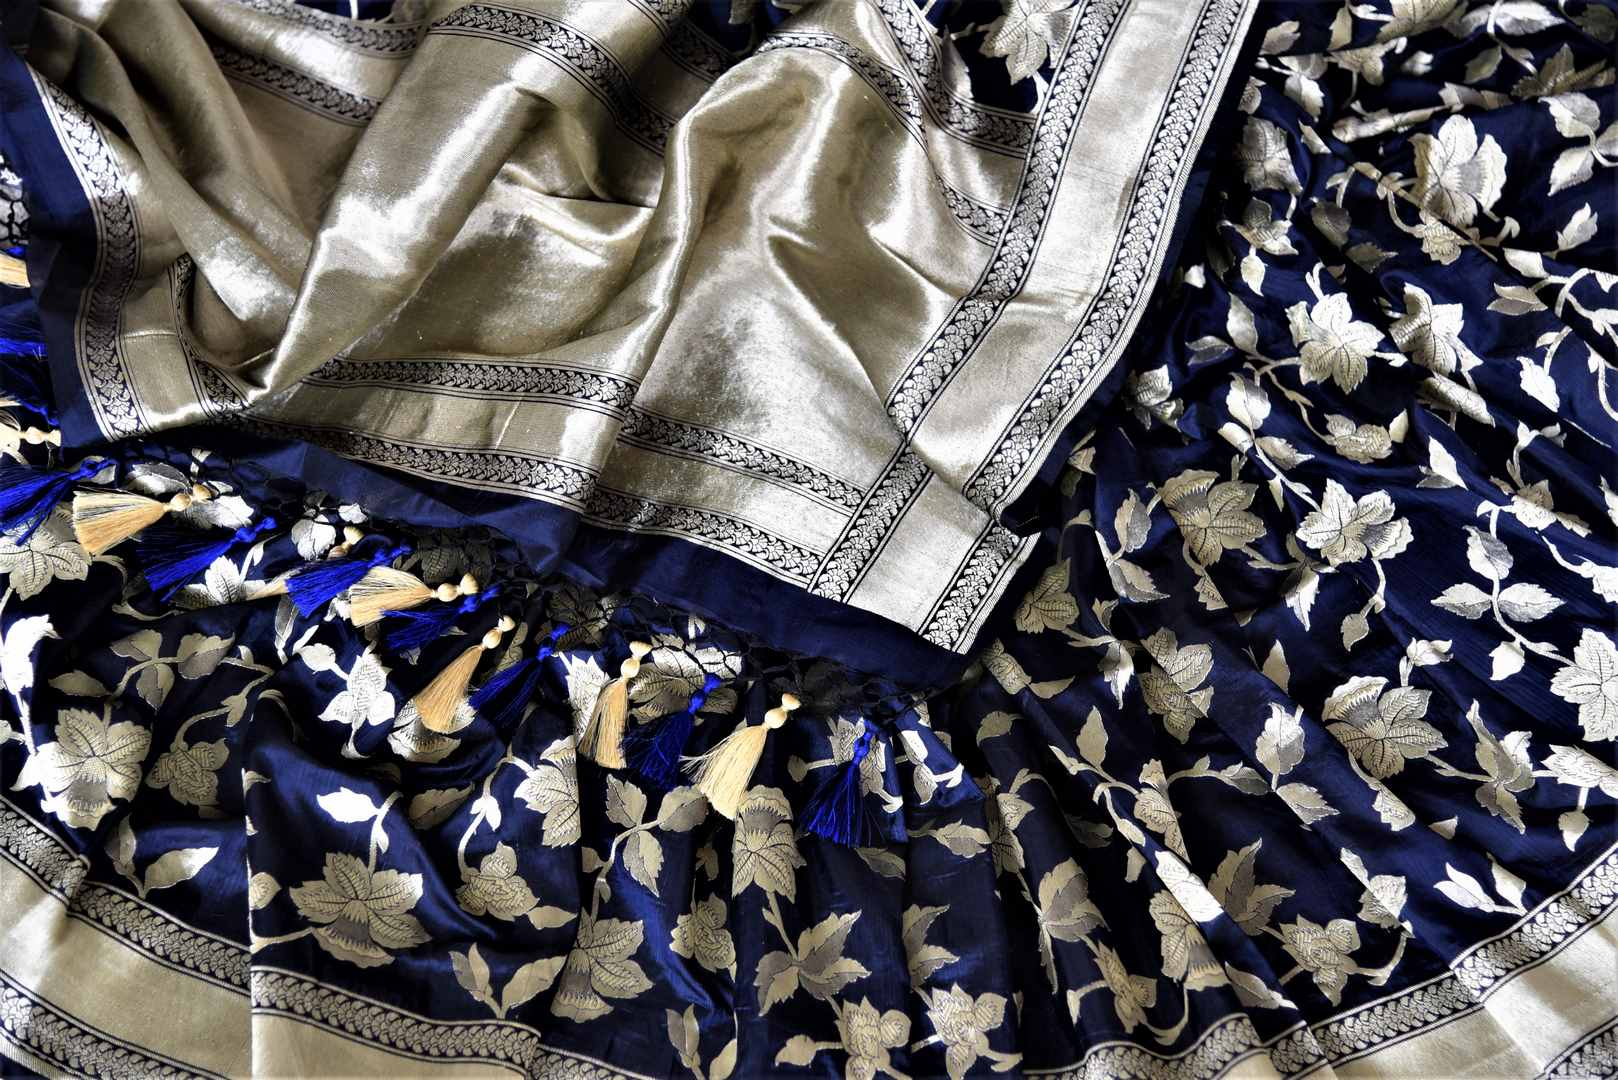 Shop beautiful navy Banarasi silk saree online in USA with floral zari work. Keep it elegant with zari work sarees, Banarasi silk sarees, handwoven sarees from Pure Elegance Indian fashion boutique in USA. We bring a especially curated collection of ethnic sarees for Indian women in USA under one roof!-details